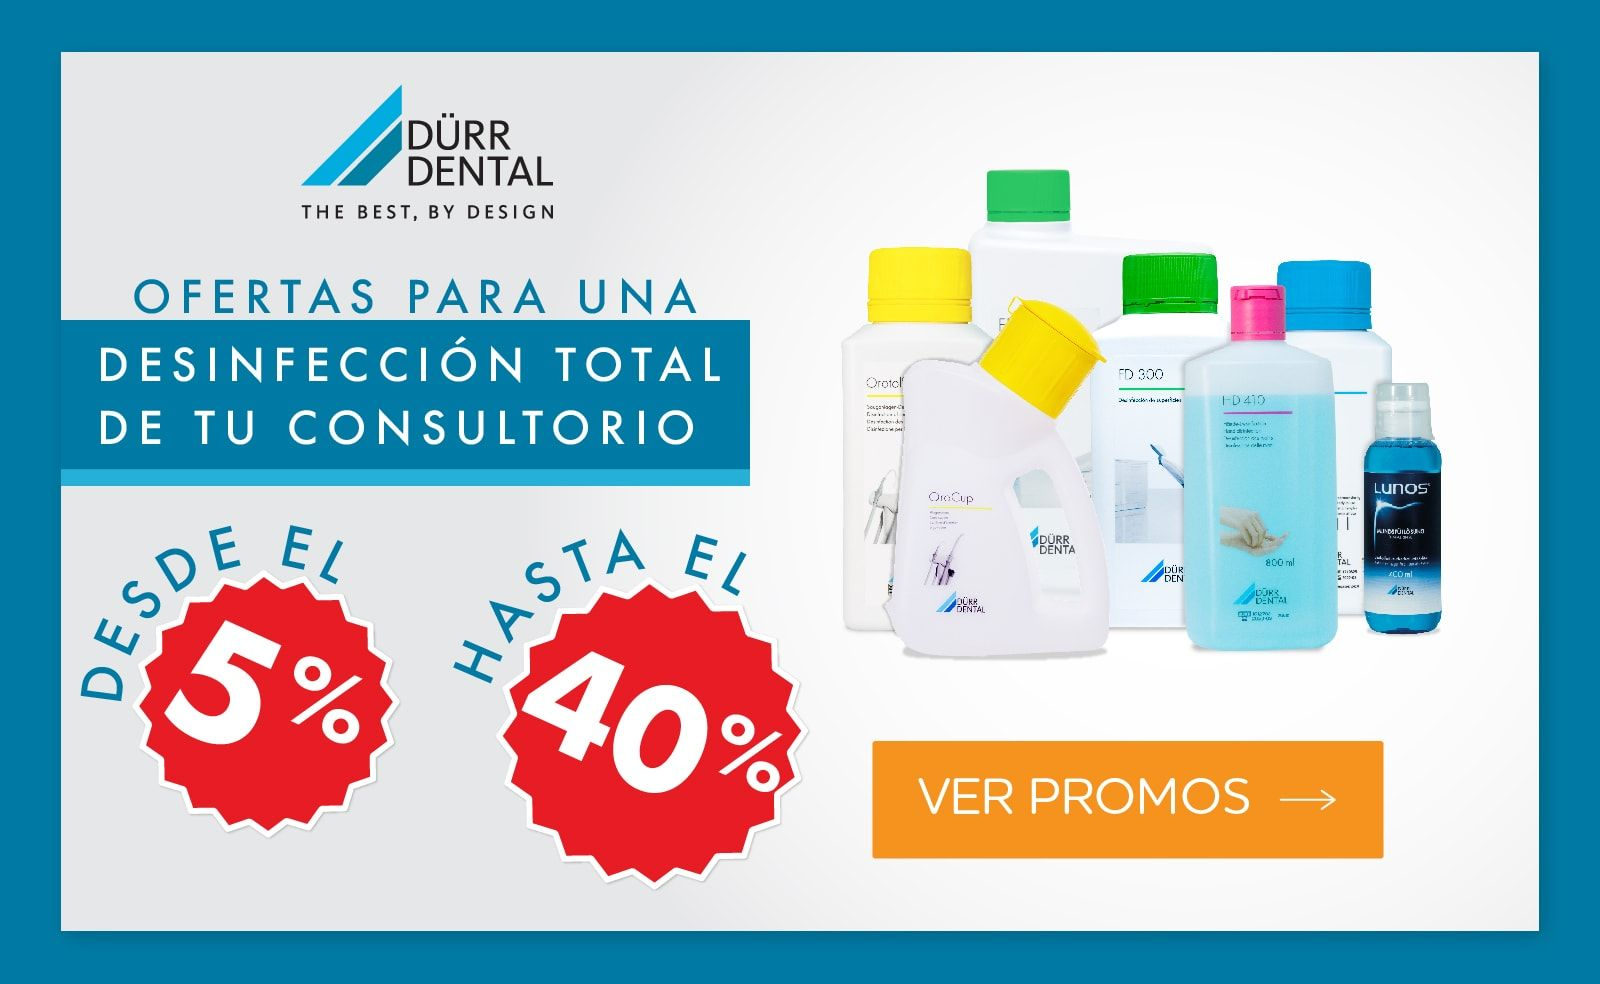 Ofertas Dürr materiales dentales Home durrtesar regularpromos min